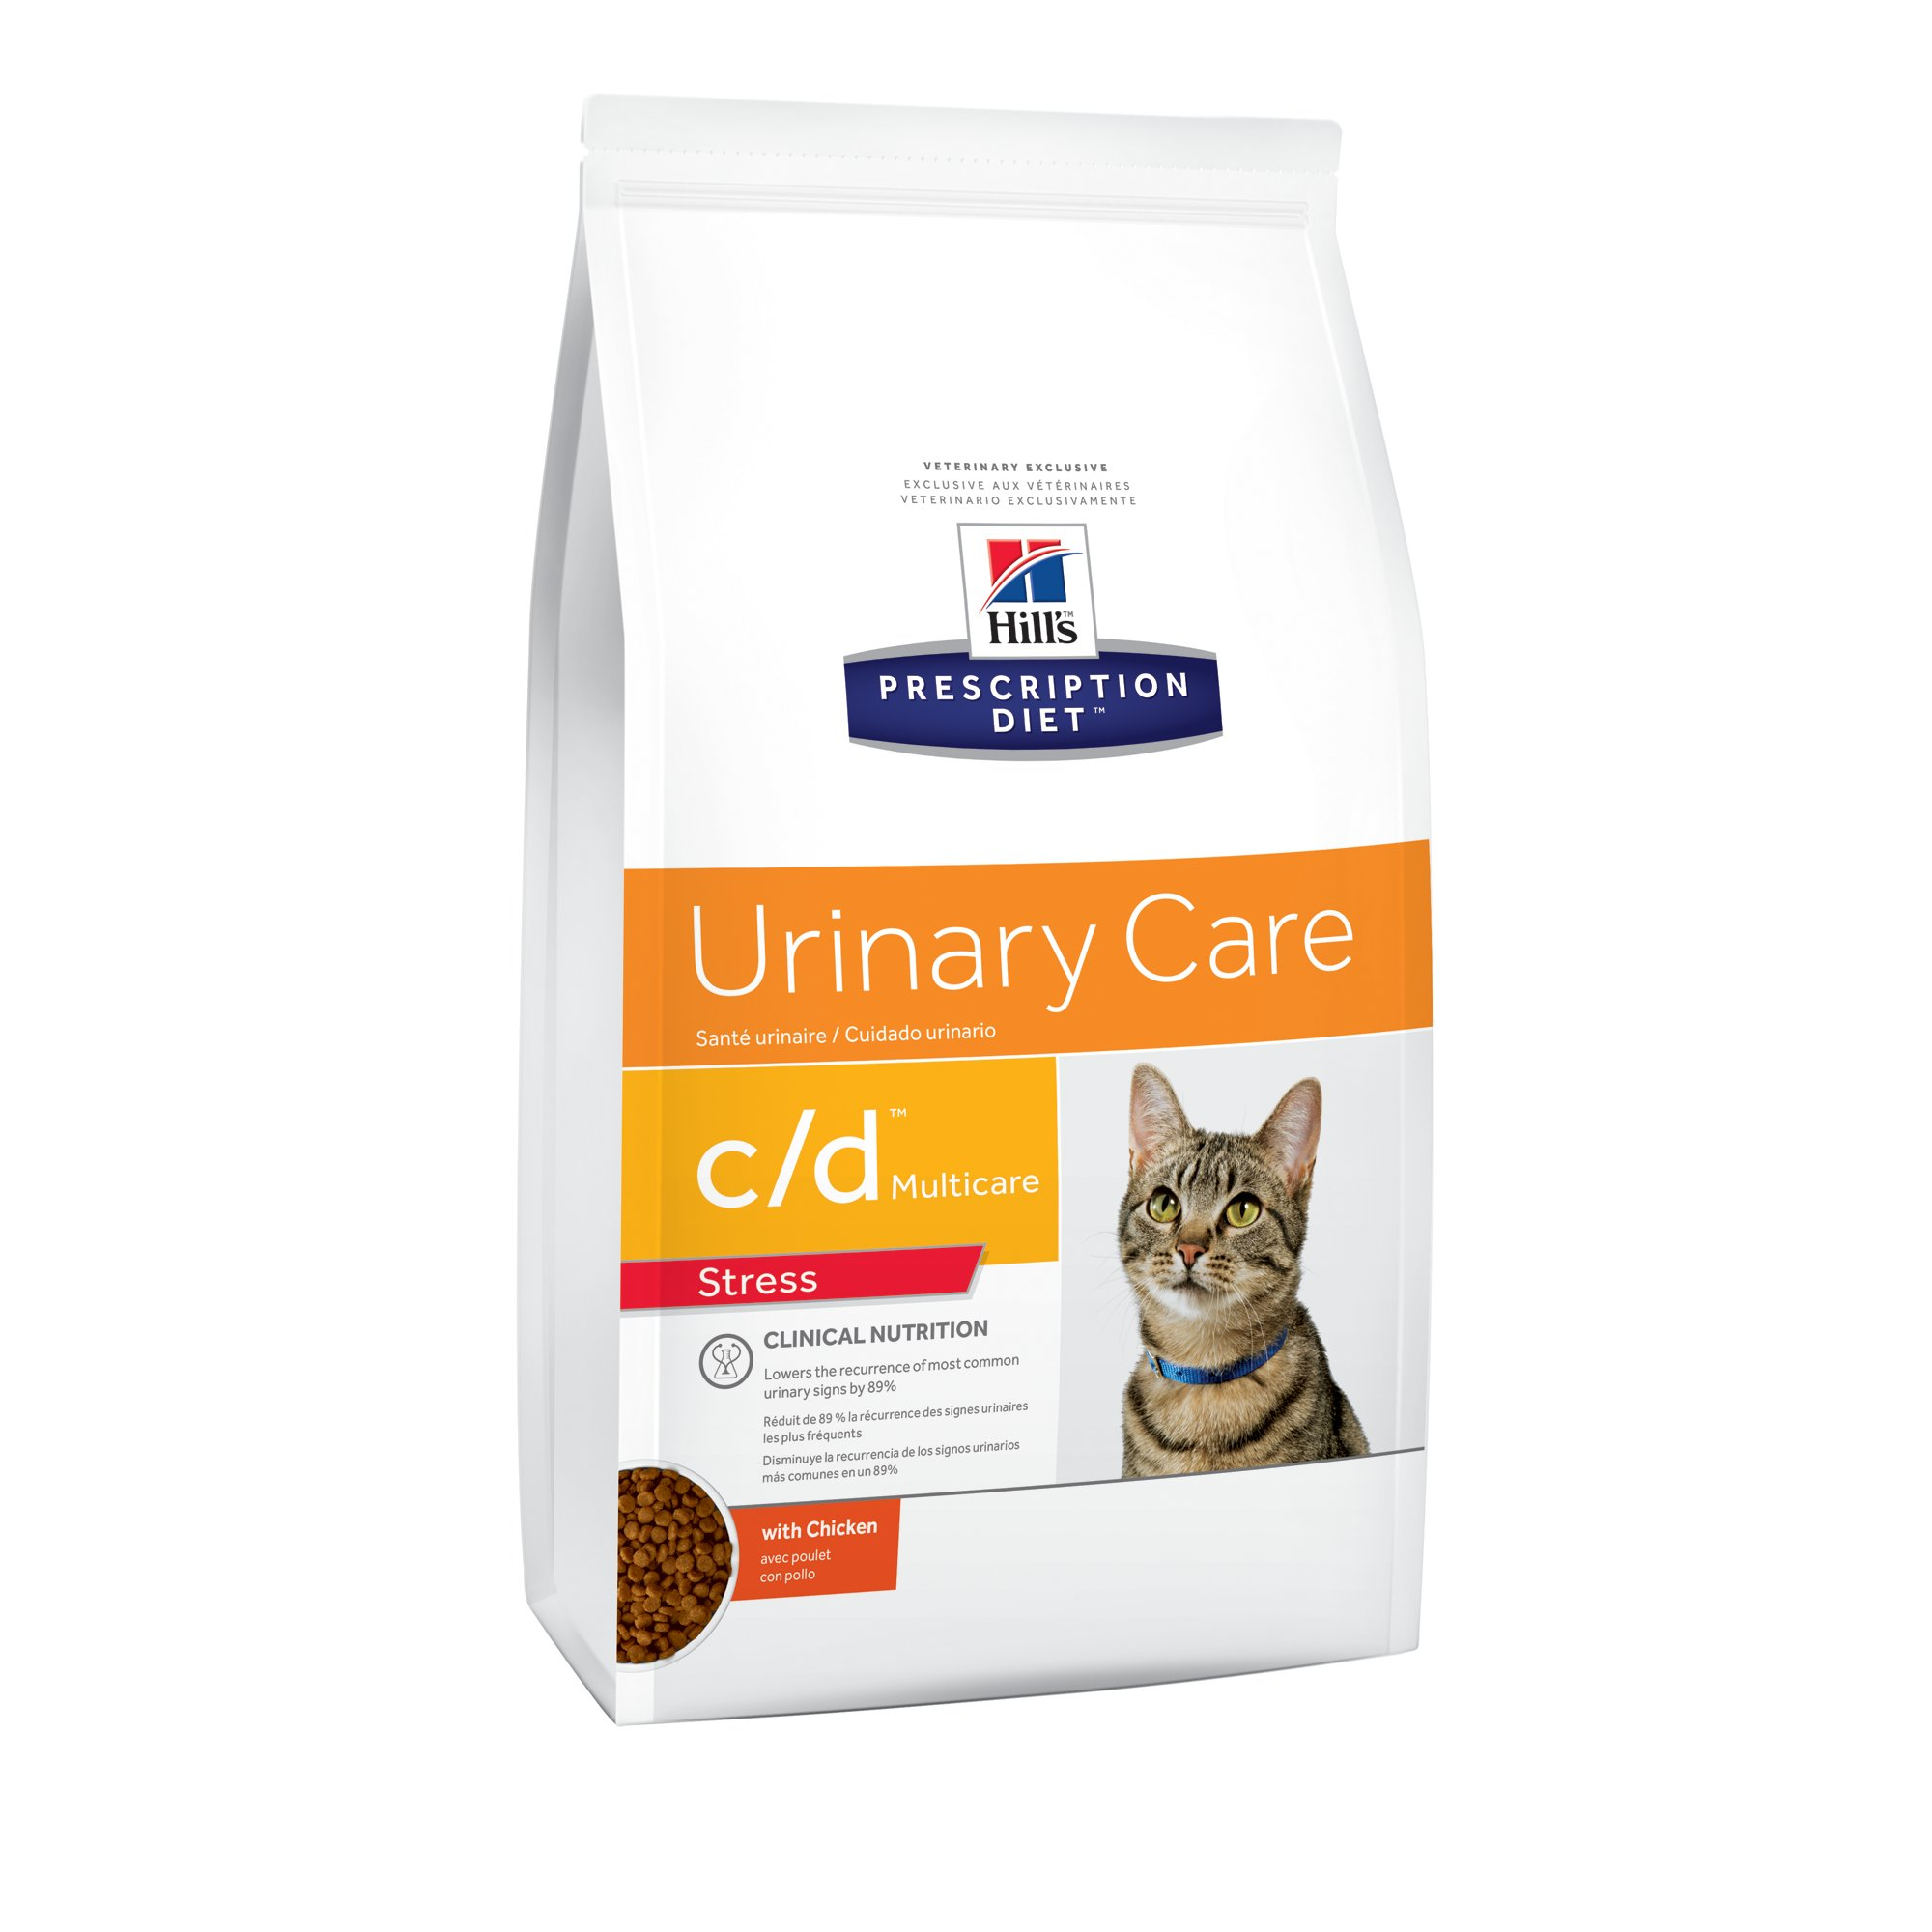 Hill's Prescription Diet C/d Multicare Stress Urinary Care